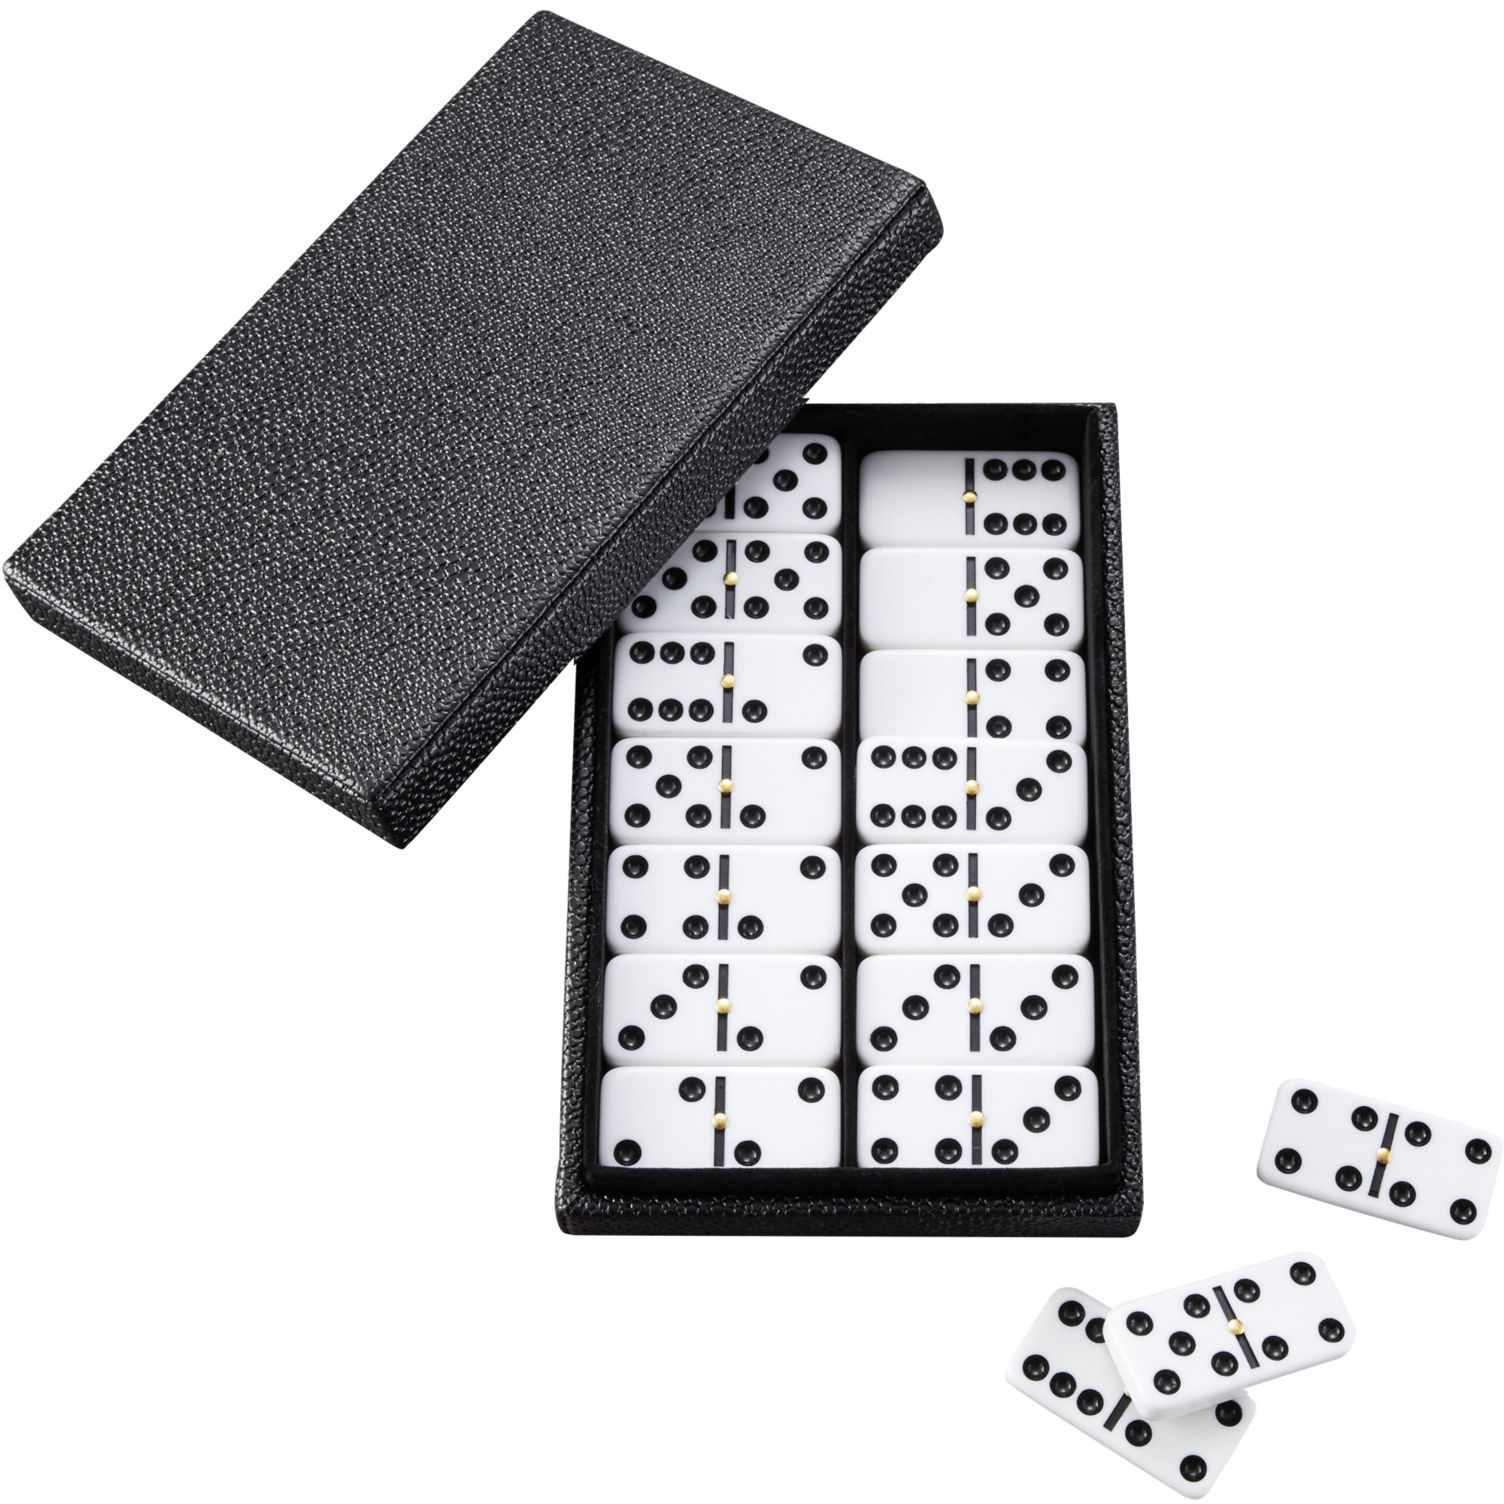 A set of dominoes in a faux-shagreen box.